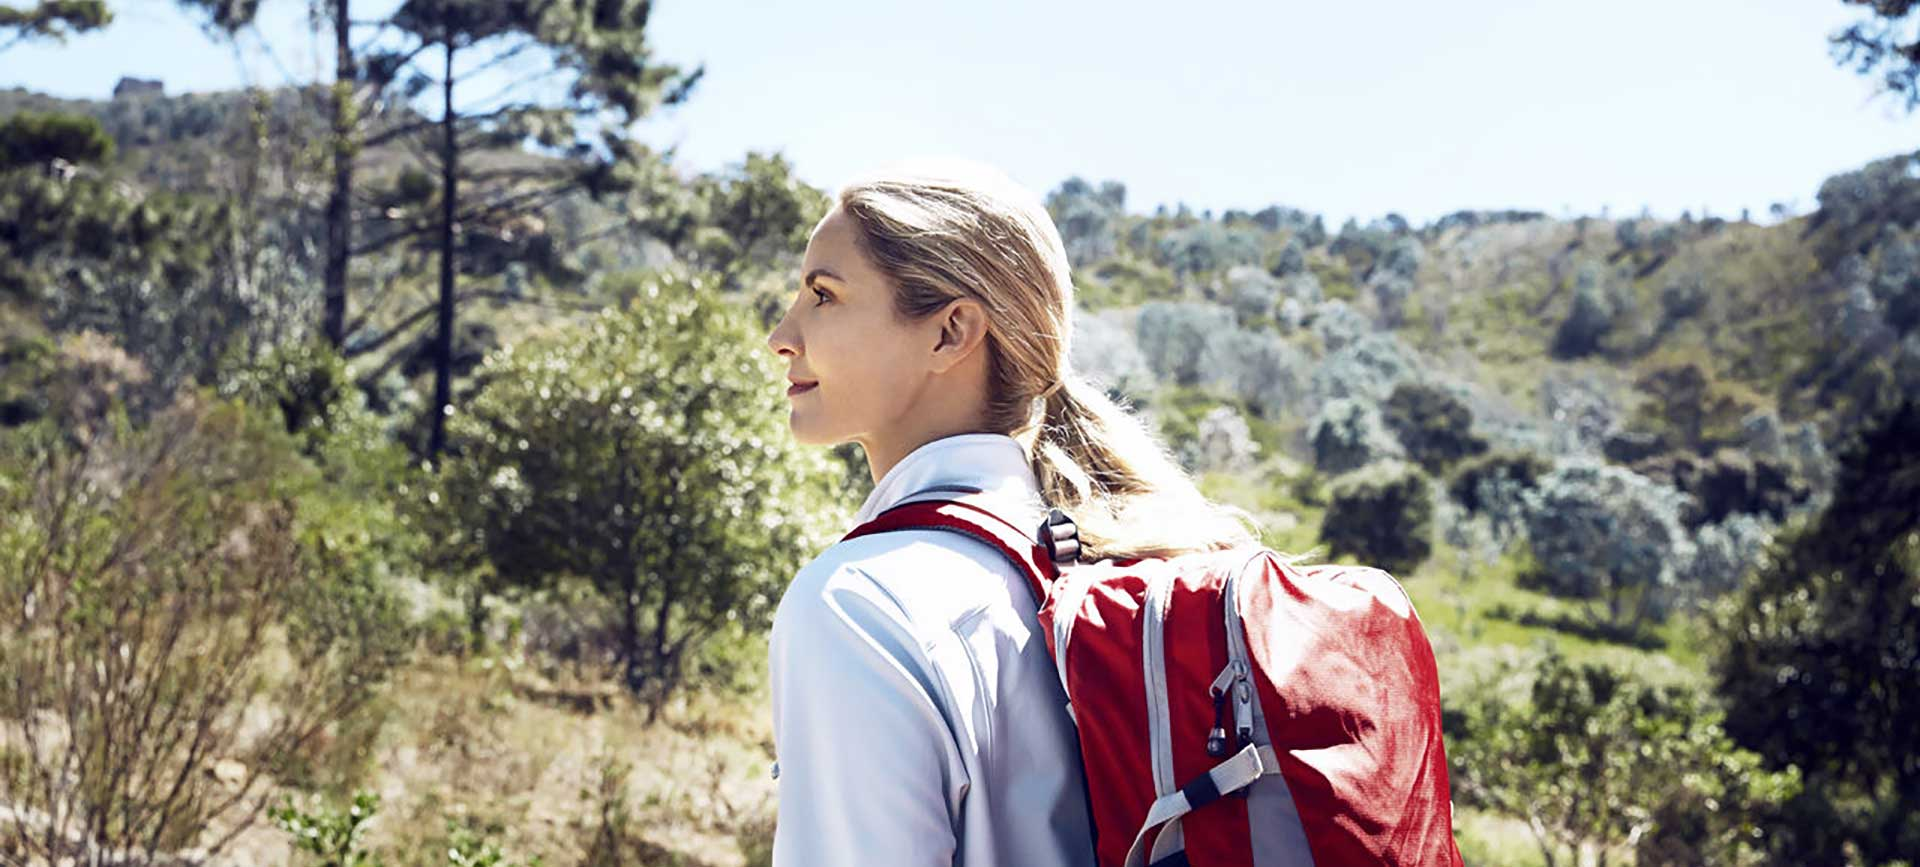 A young woman walking through trees with a red backpack